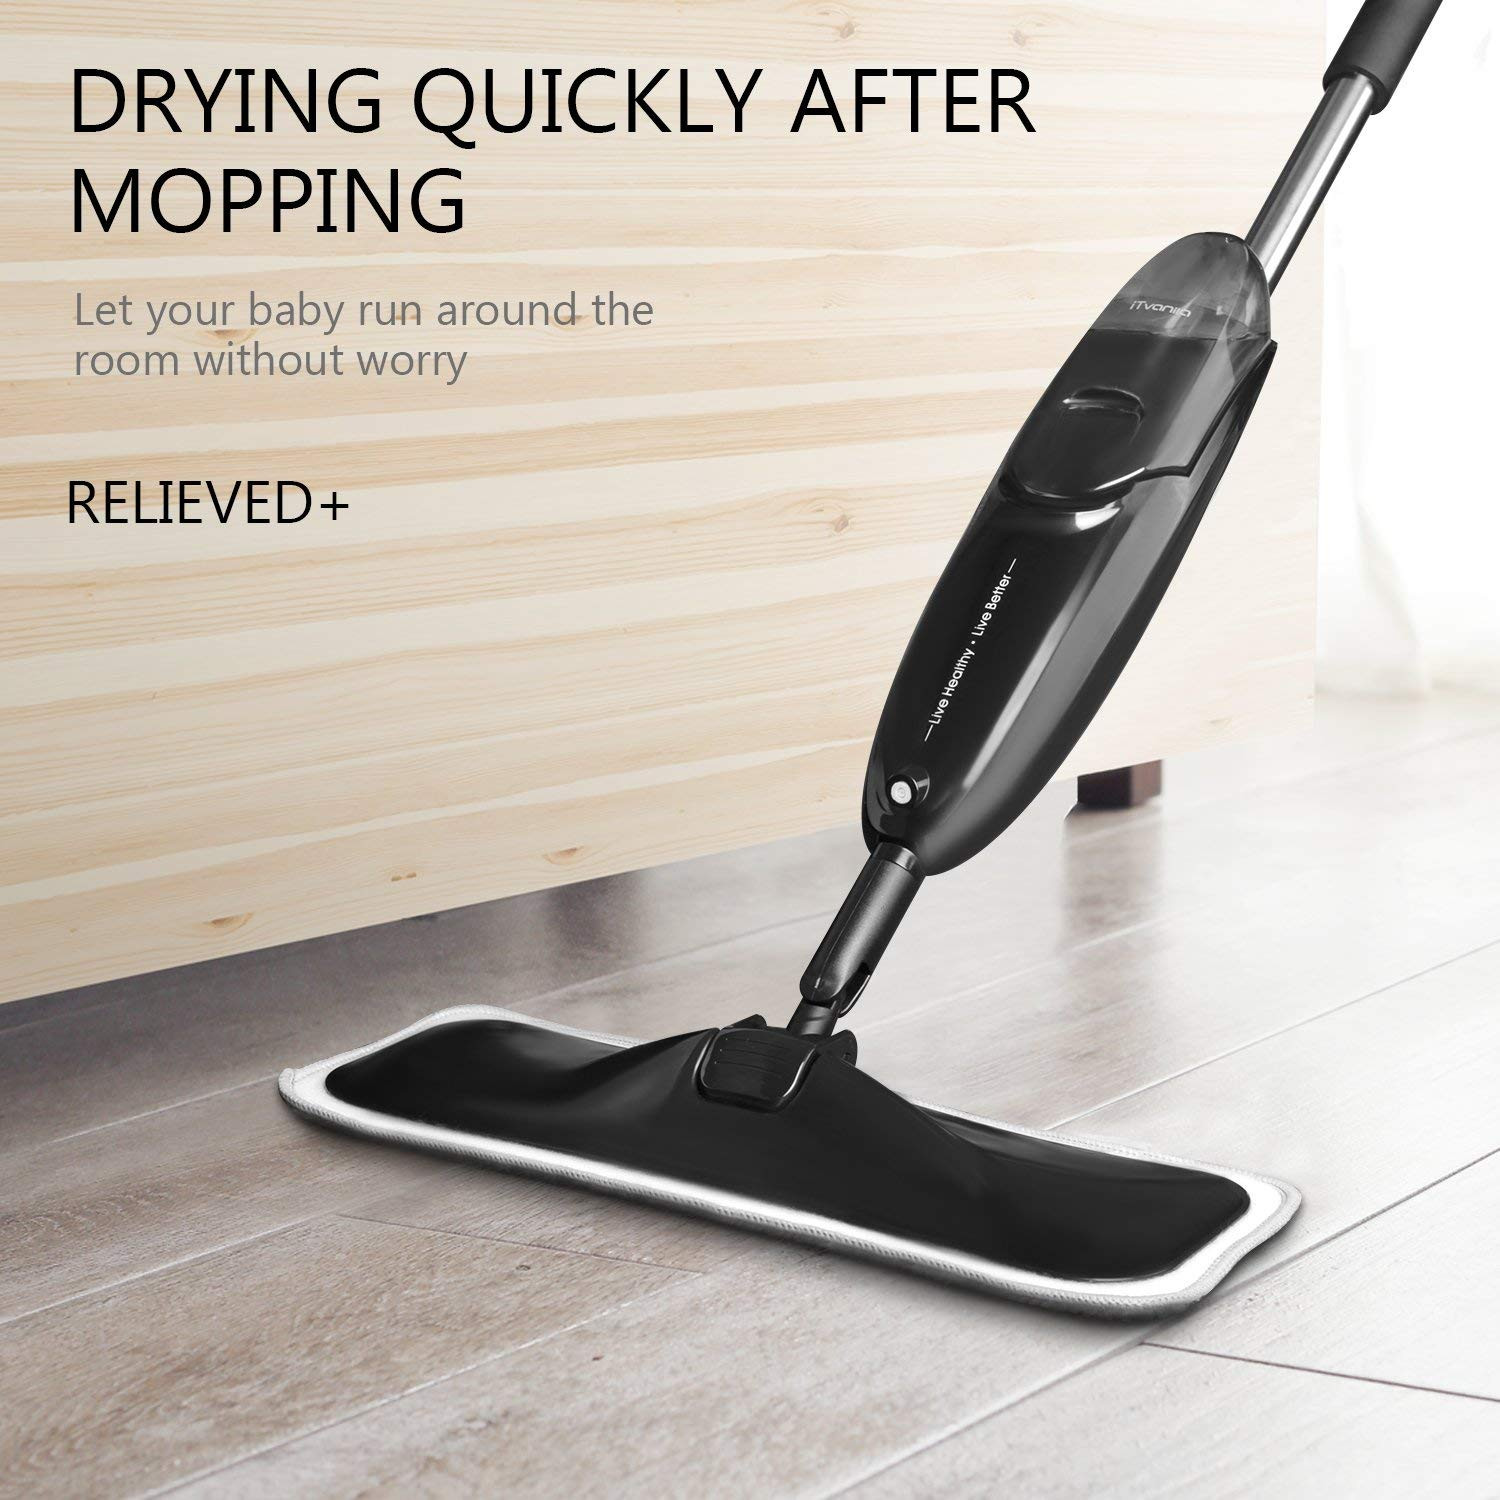 hardwood floor cleaners consumer reviews of amazon com itvanila hardwood floor mop spray microfiber mop with 4 for amazon com itvanila hardwood floor mop spray microfiber mop with 4 pcs reusable microfibre pads 360 degree rotating easy to clean dry wet mop for